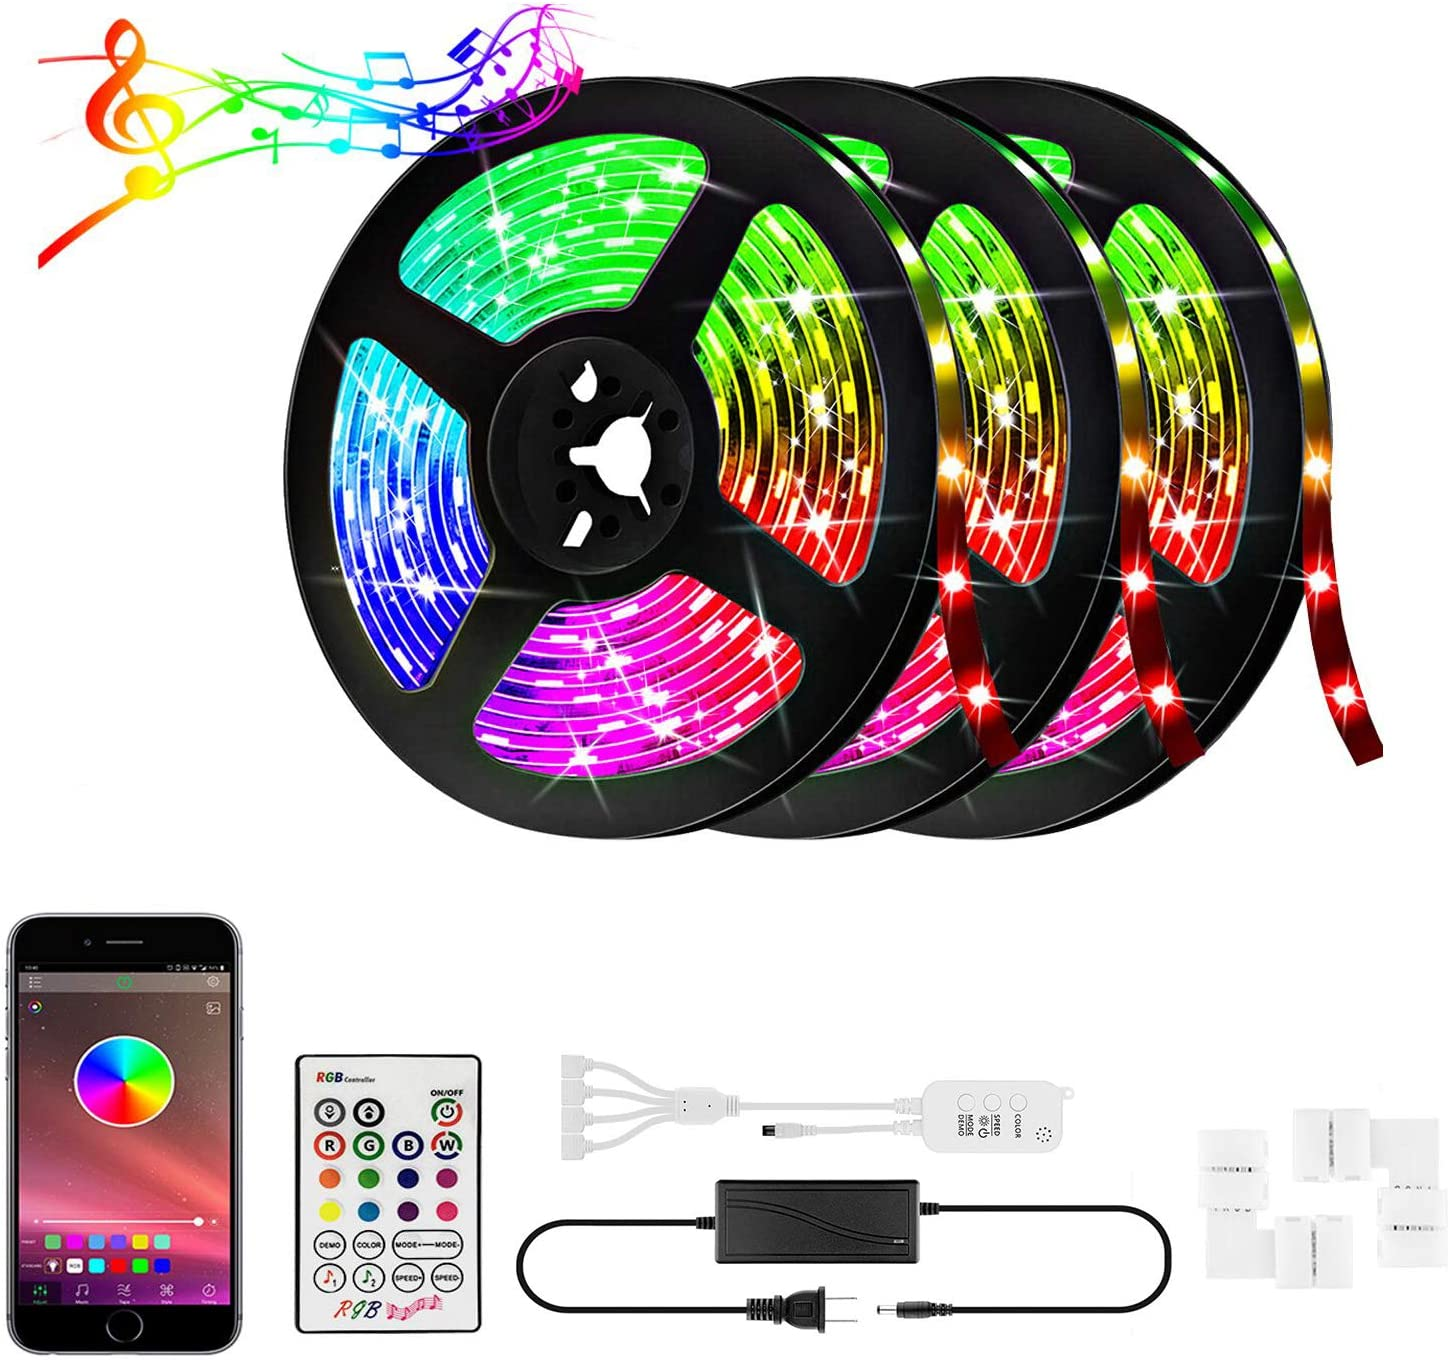 50ft RGB LED Strip Lights Kit, 15M 600 LEDs 5050 RGB LED Light Strip, LED Tape Lights with Remote APP Control Sync to Music, Bluetooth Controller, Remote LED Lights for Bedroom Home Party(3x16.4FT)